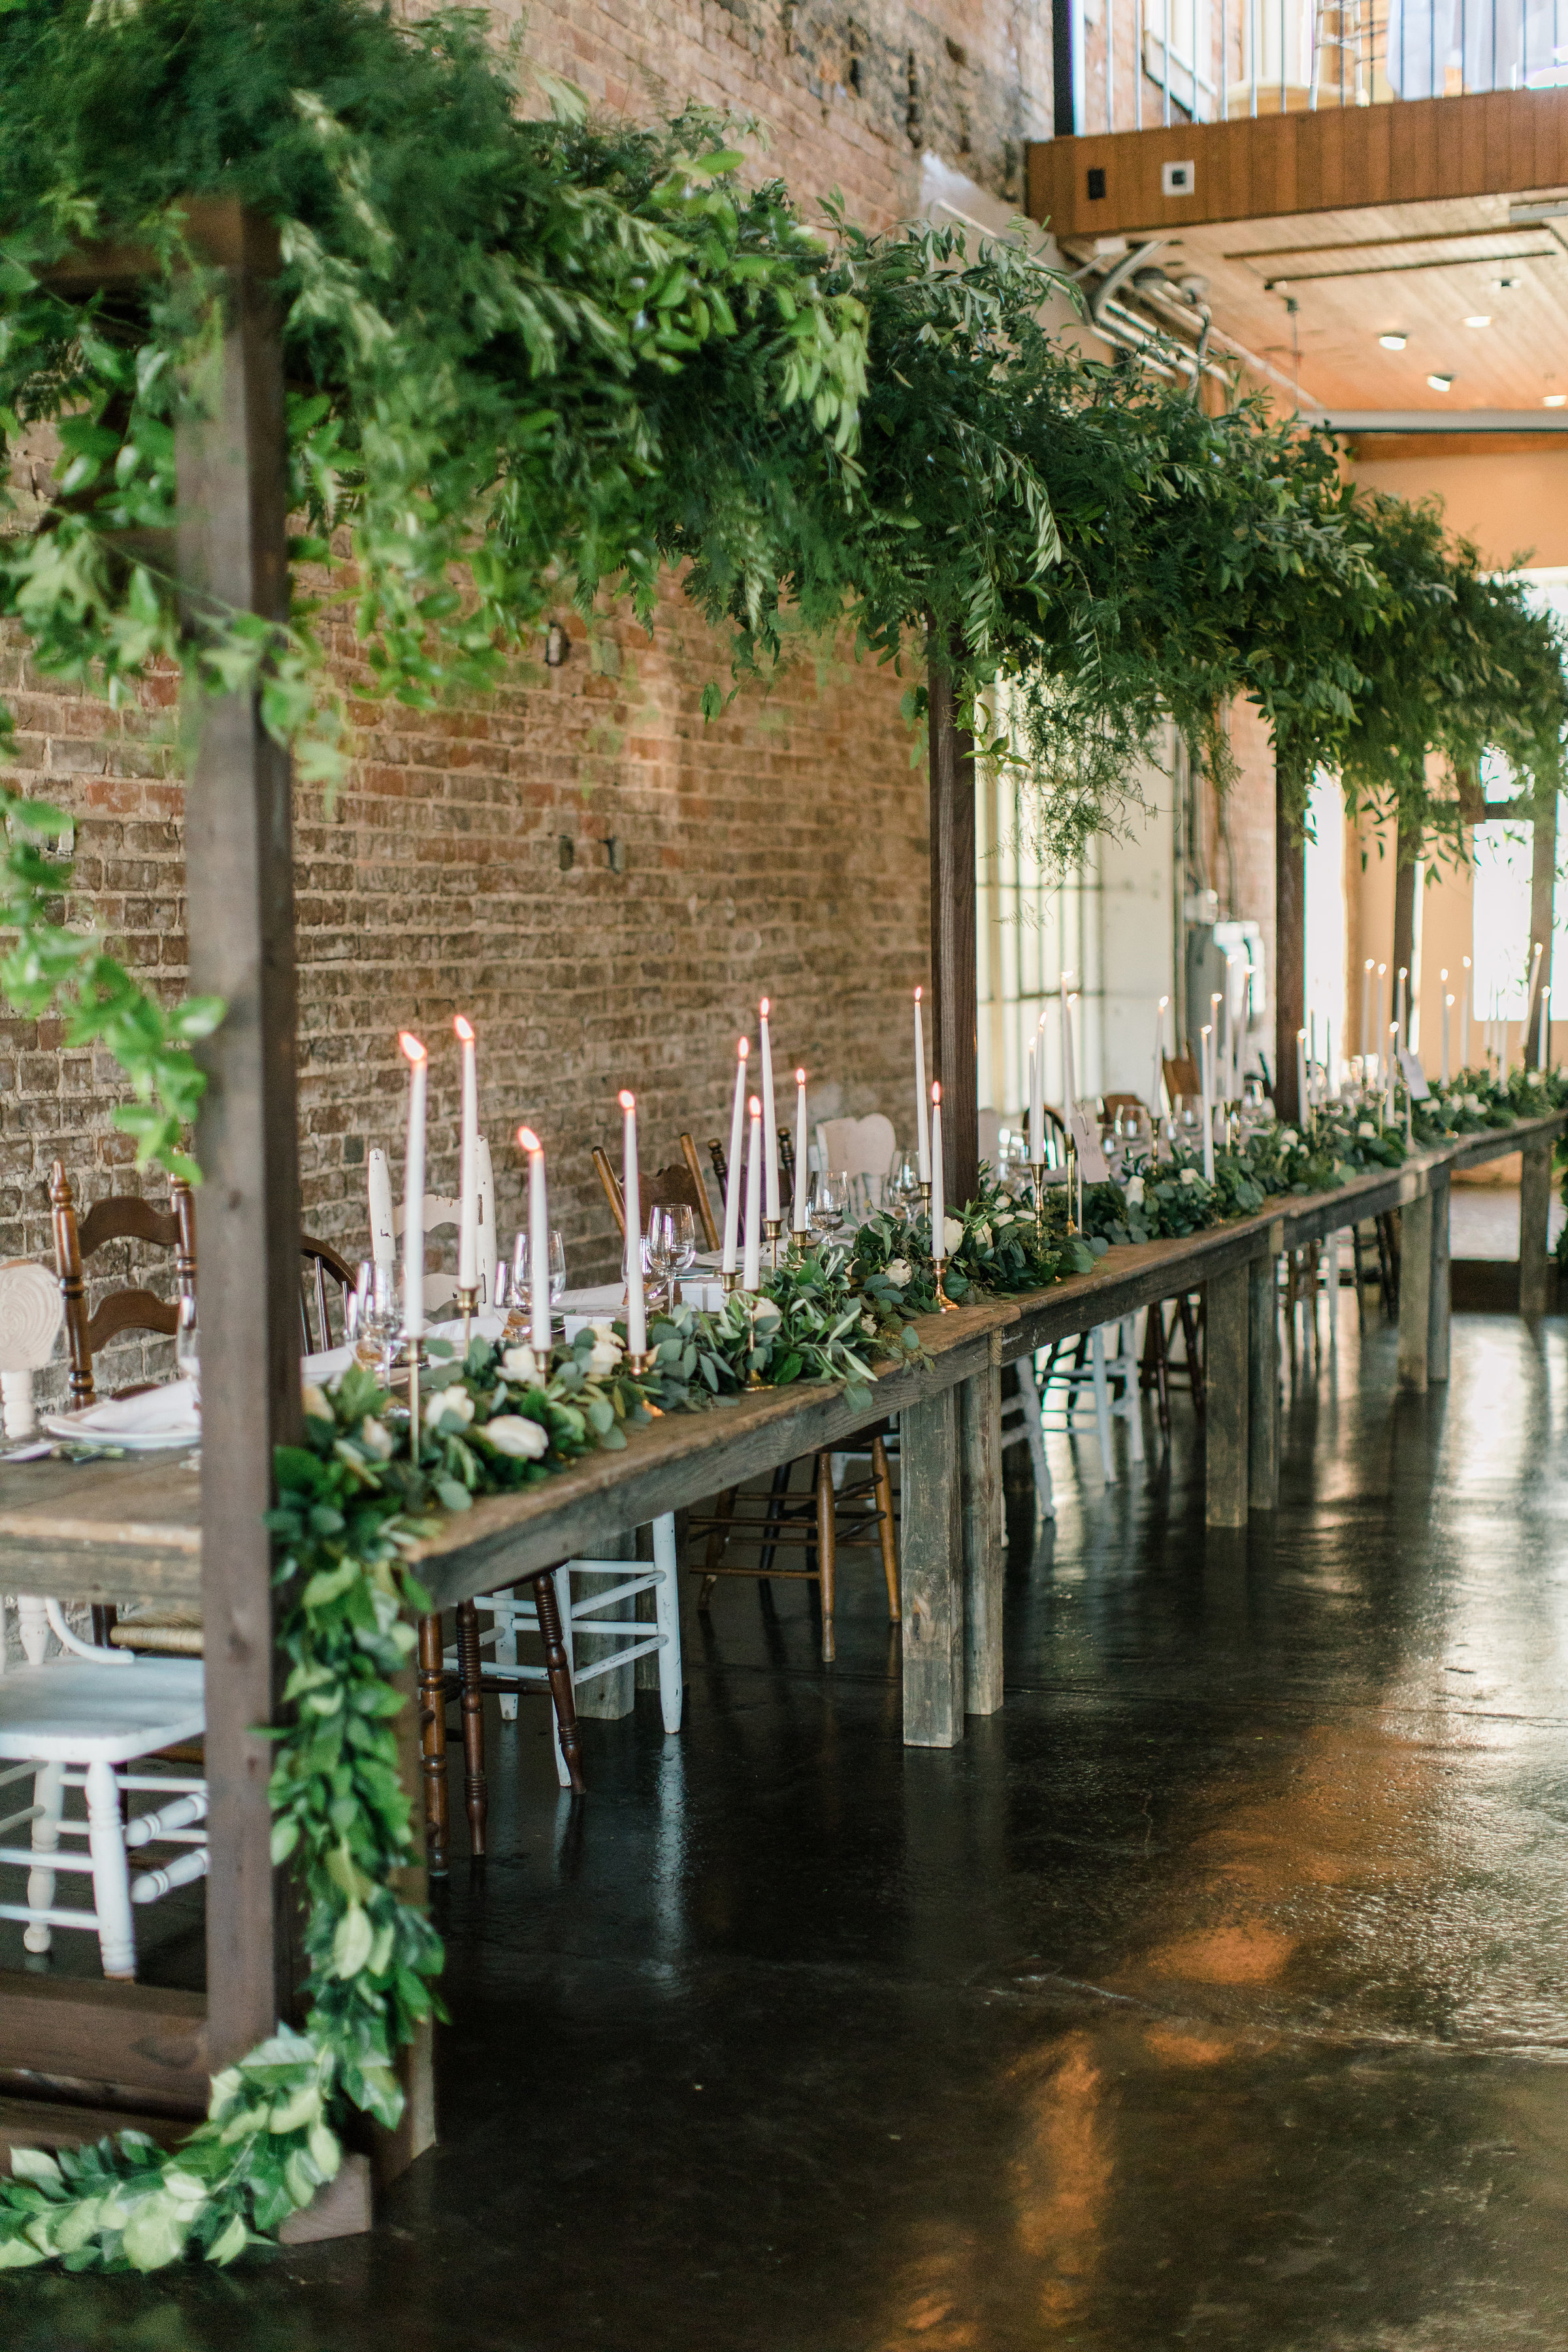 Sturdy Just Because Rehearsal Dinner Decor May Lean Toward Informal Sidedoes Not Mean That Head Table Must Be Toast Rehearsal Dinners Take Center Stage Inregister inspiration Rehearsal Dinner Toasts